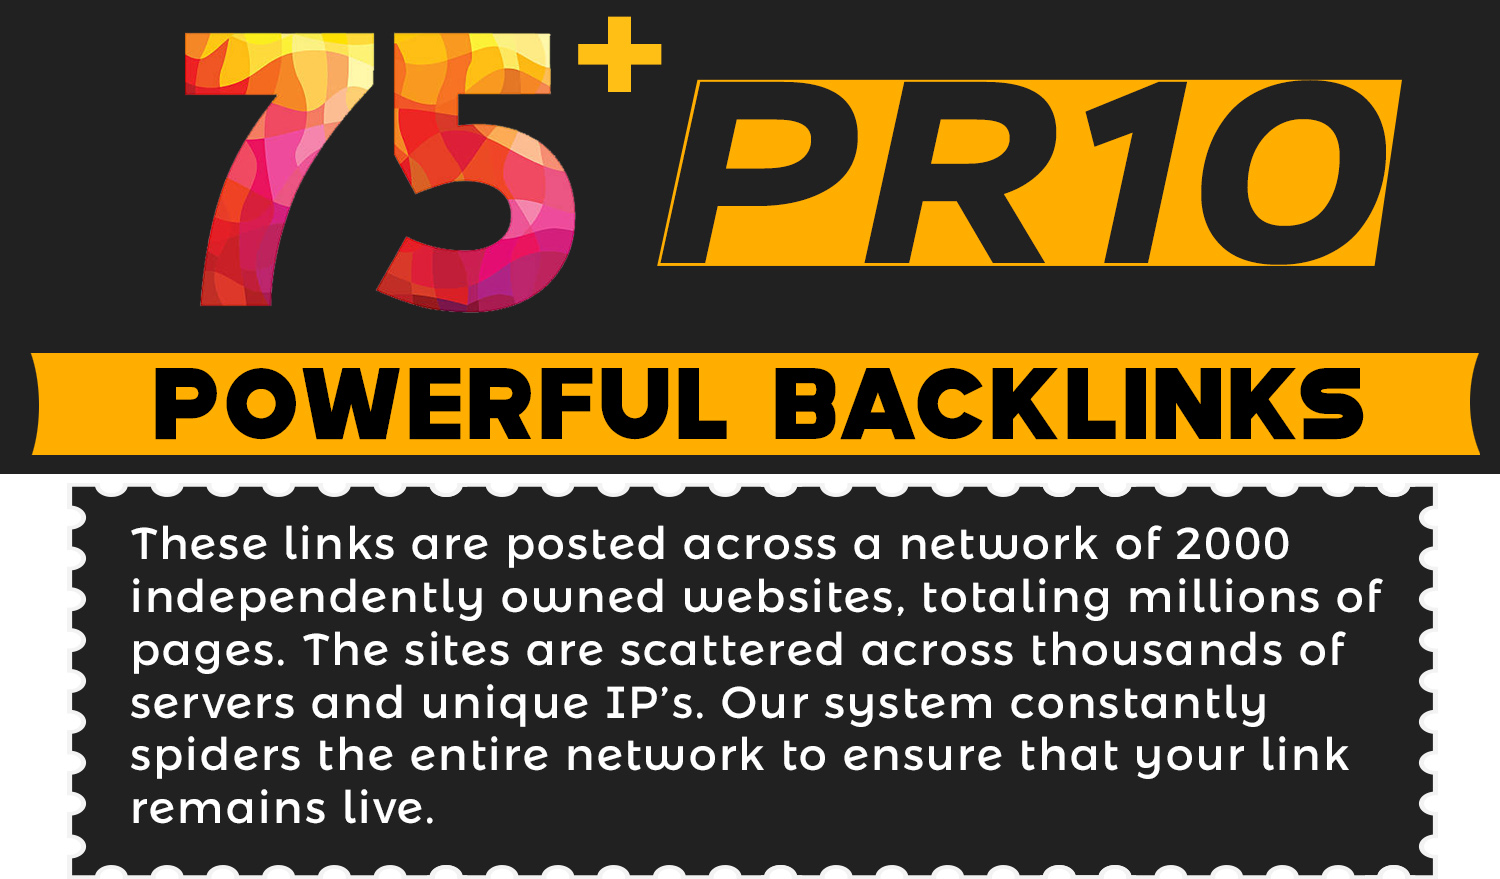 Provide 75+ PR10 Powerful High Quality SEO BackIinks on DA100 websites